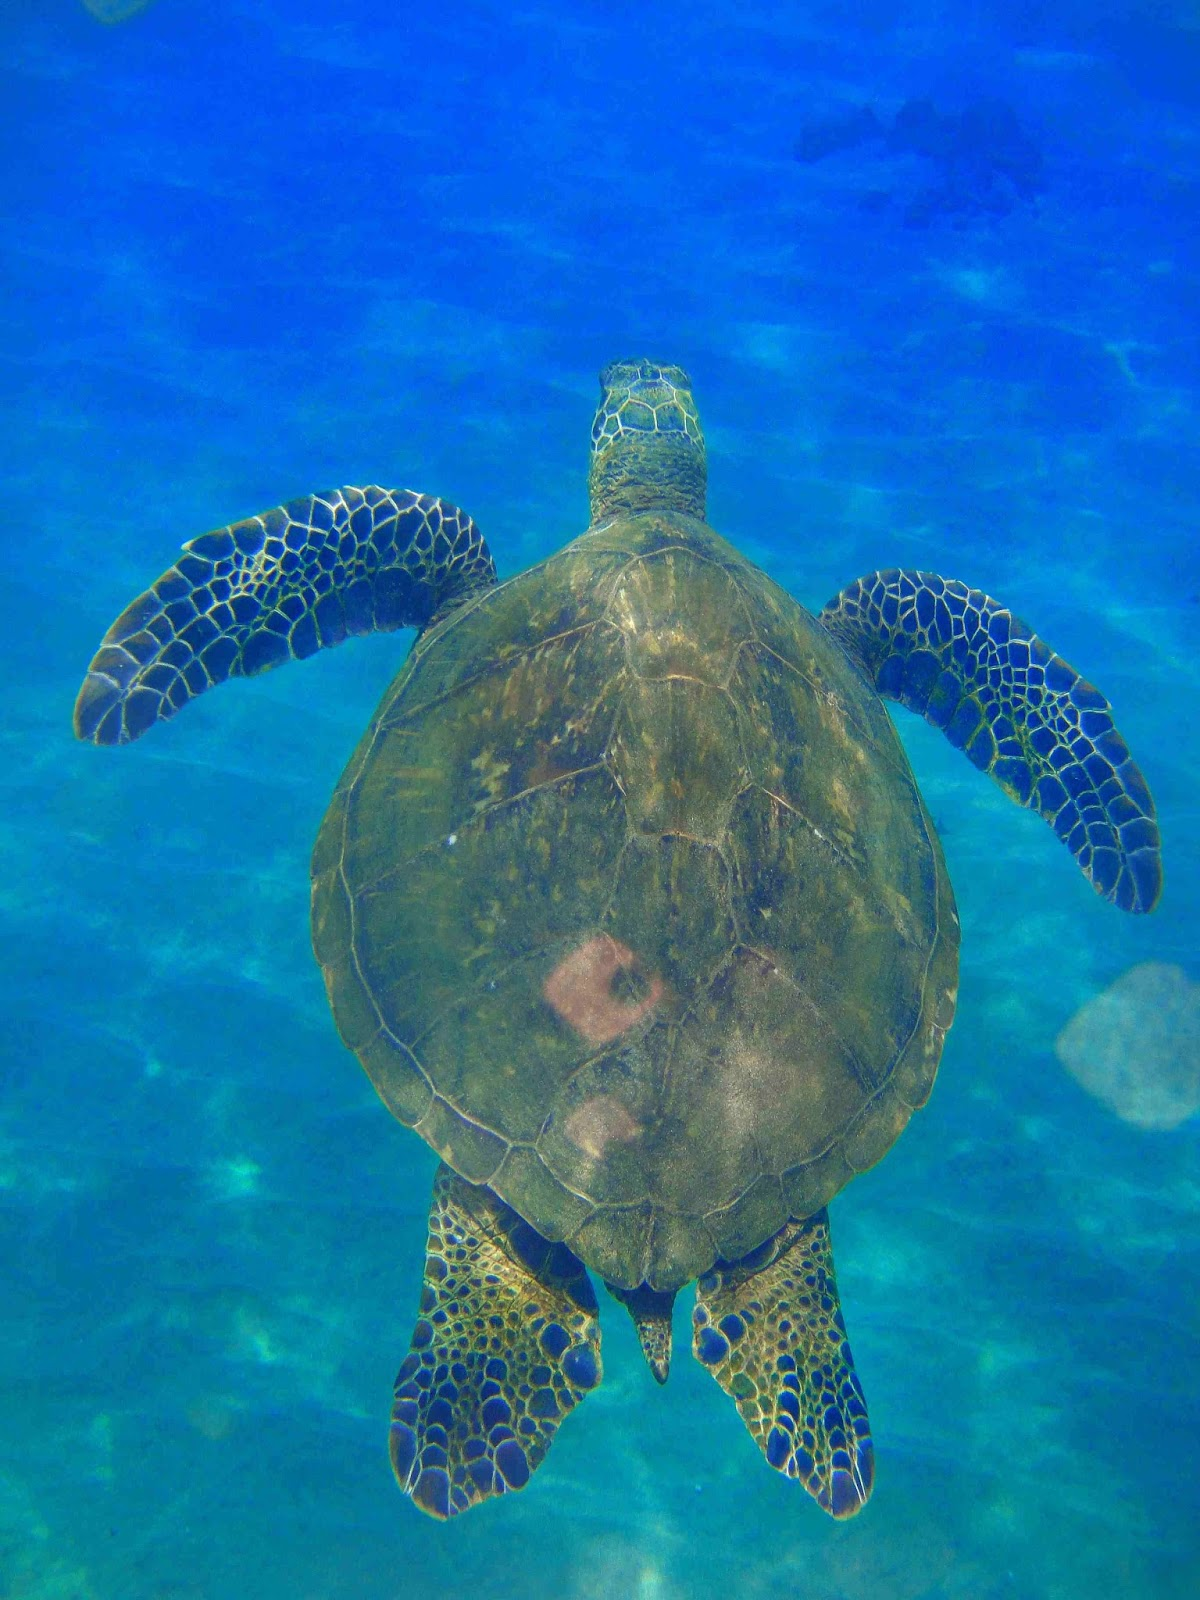 This great green sea turtle, swimming near